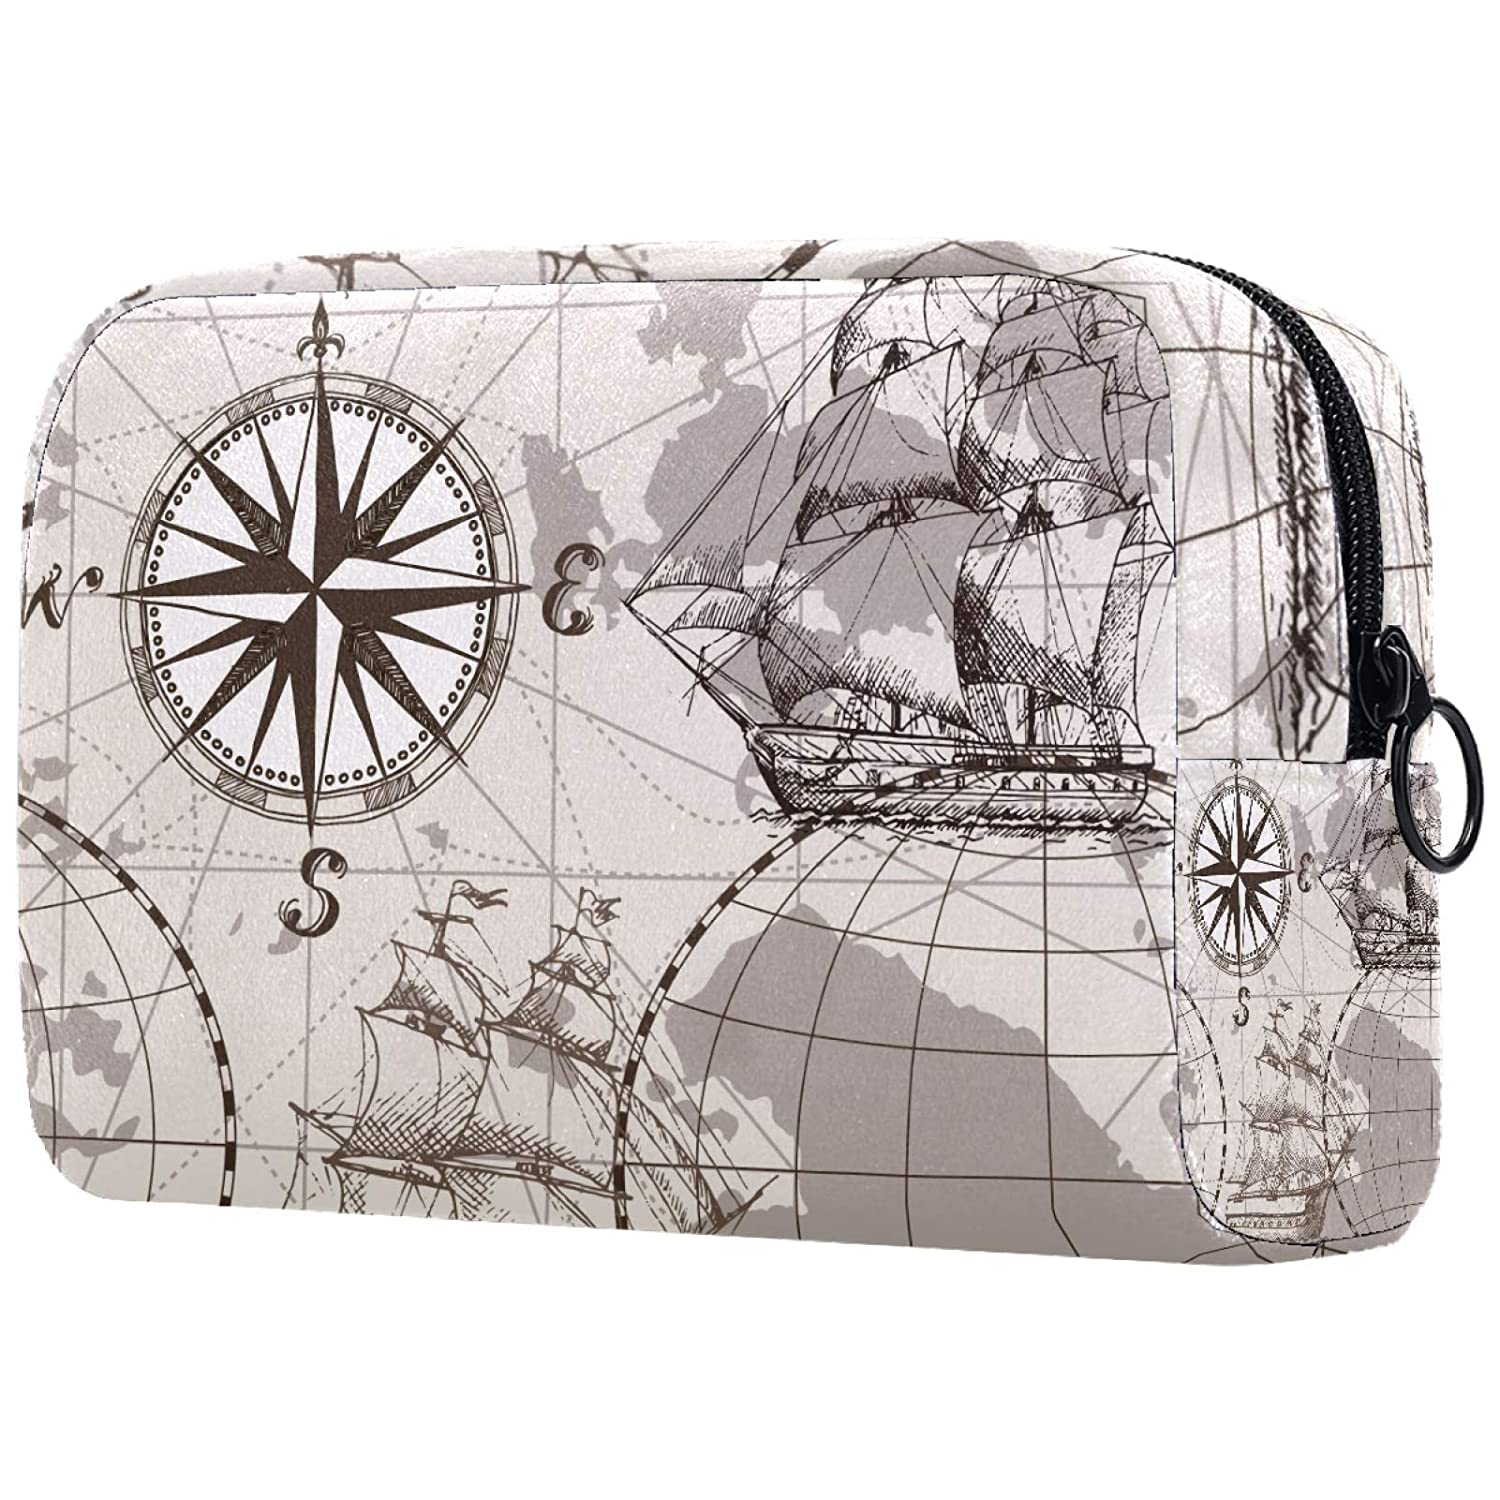 Excellence Toiletry Bag Cosmetic Travel Makeup wit Pouch depot Wash Organizer